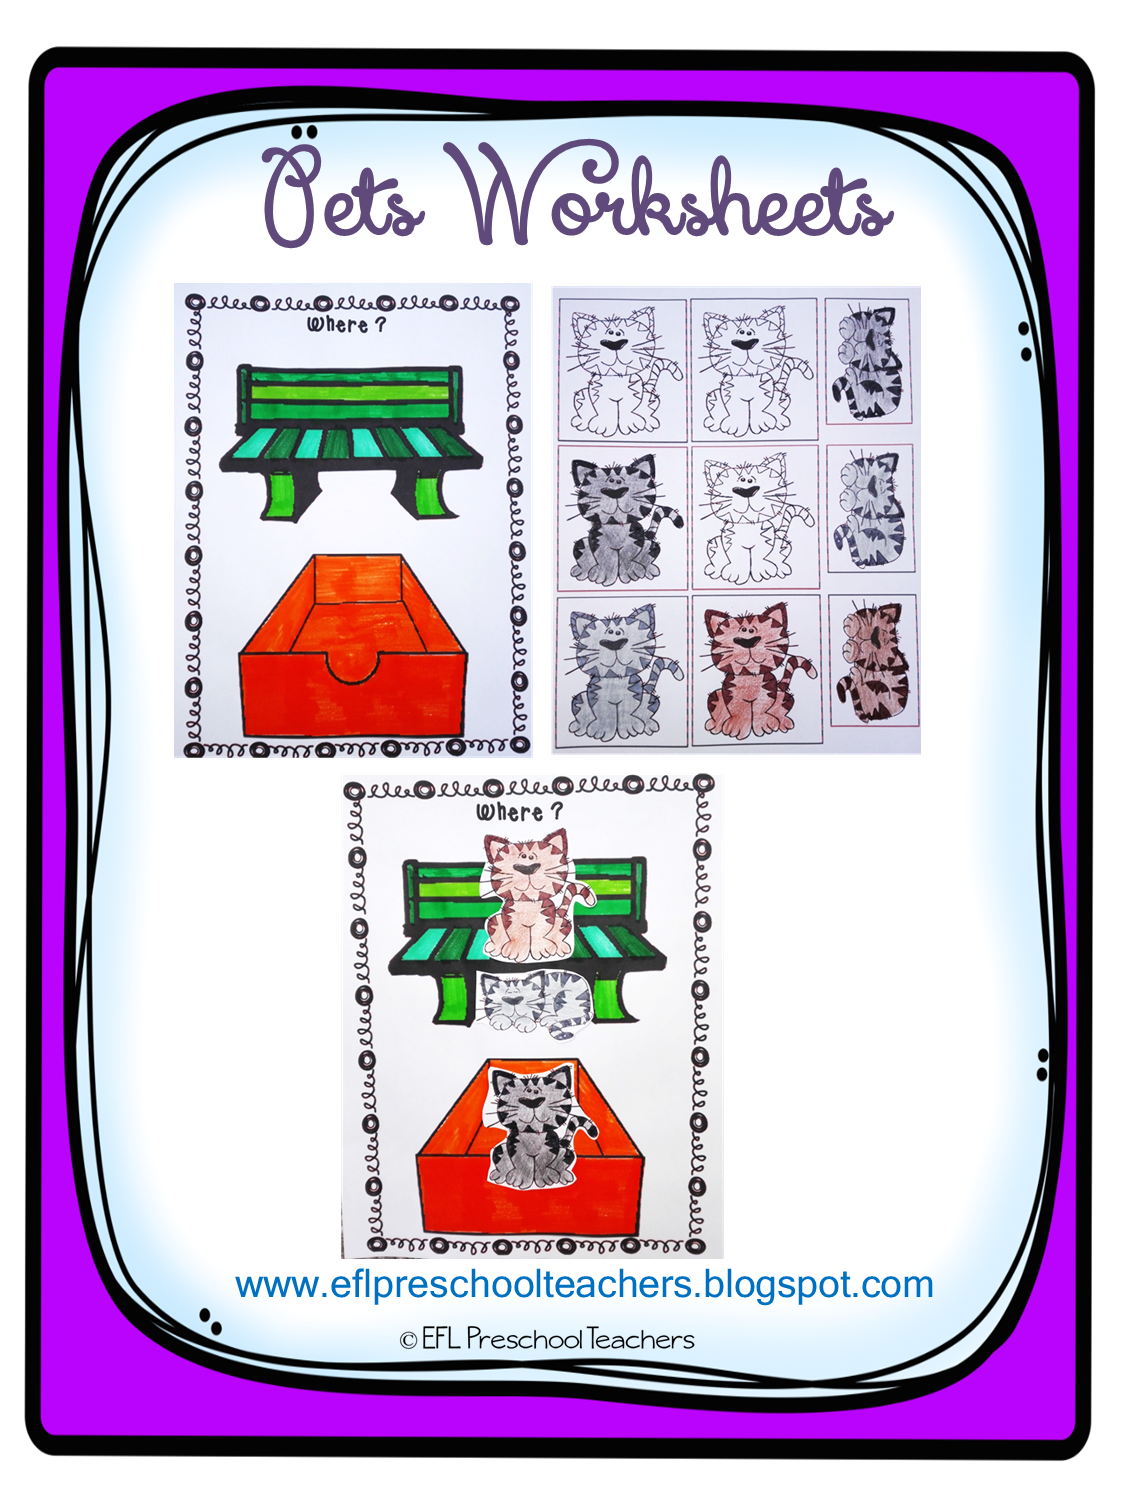 Esl Efl Preschool Teachers Pet Activities For Preschool Ell